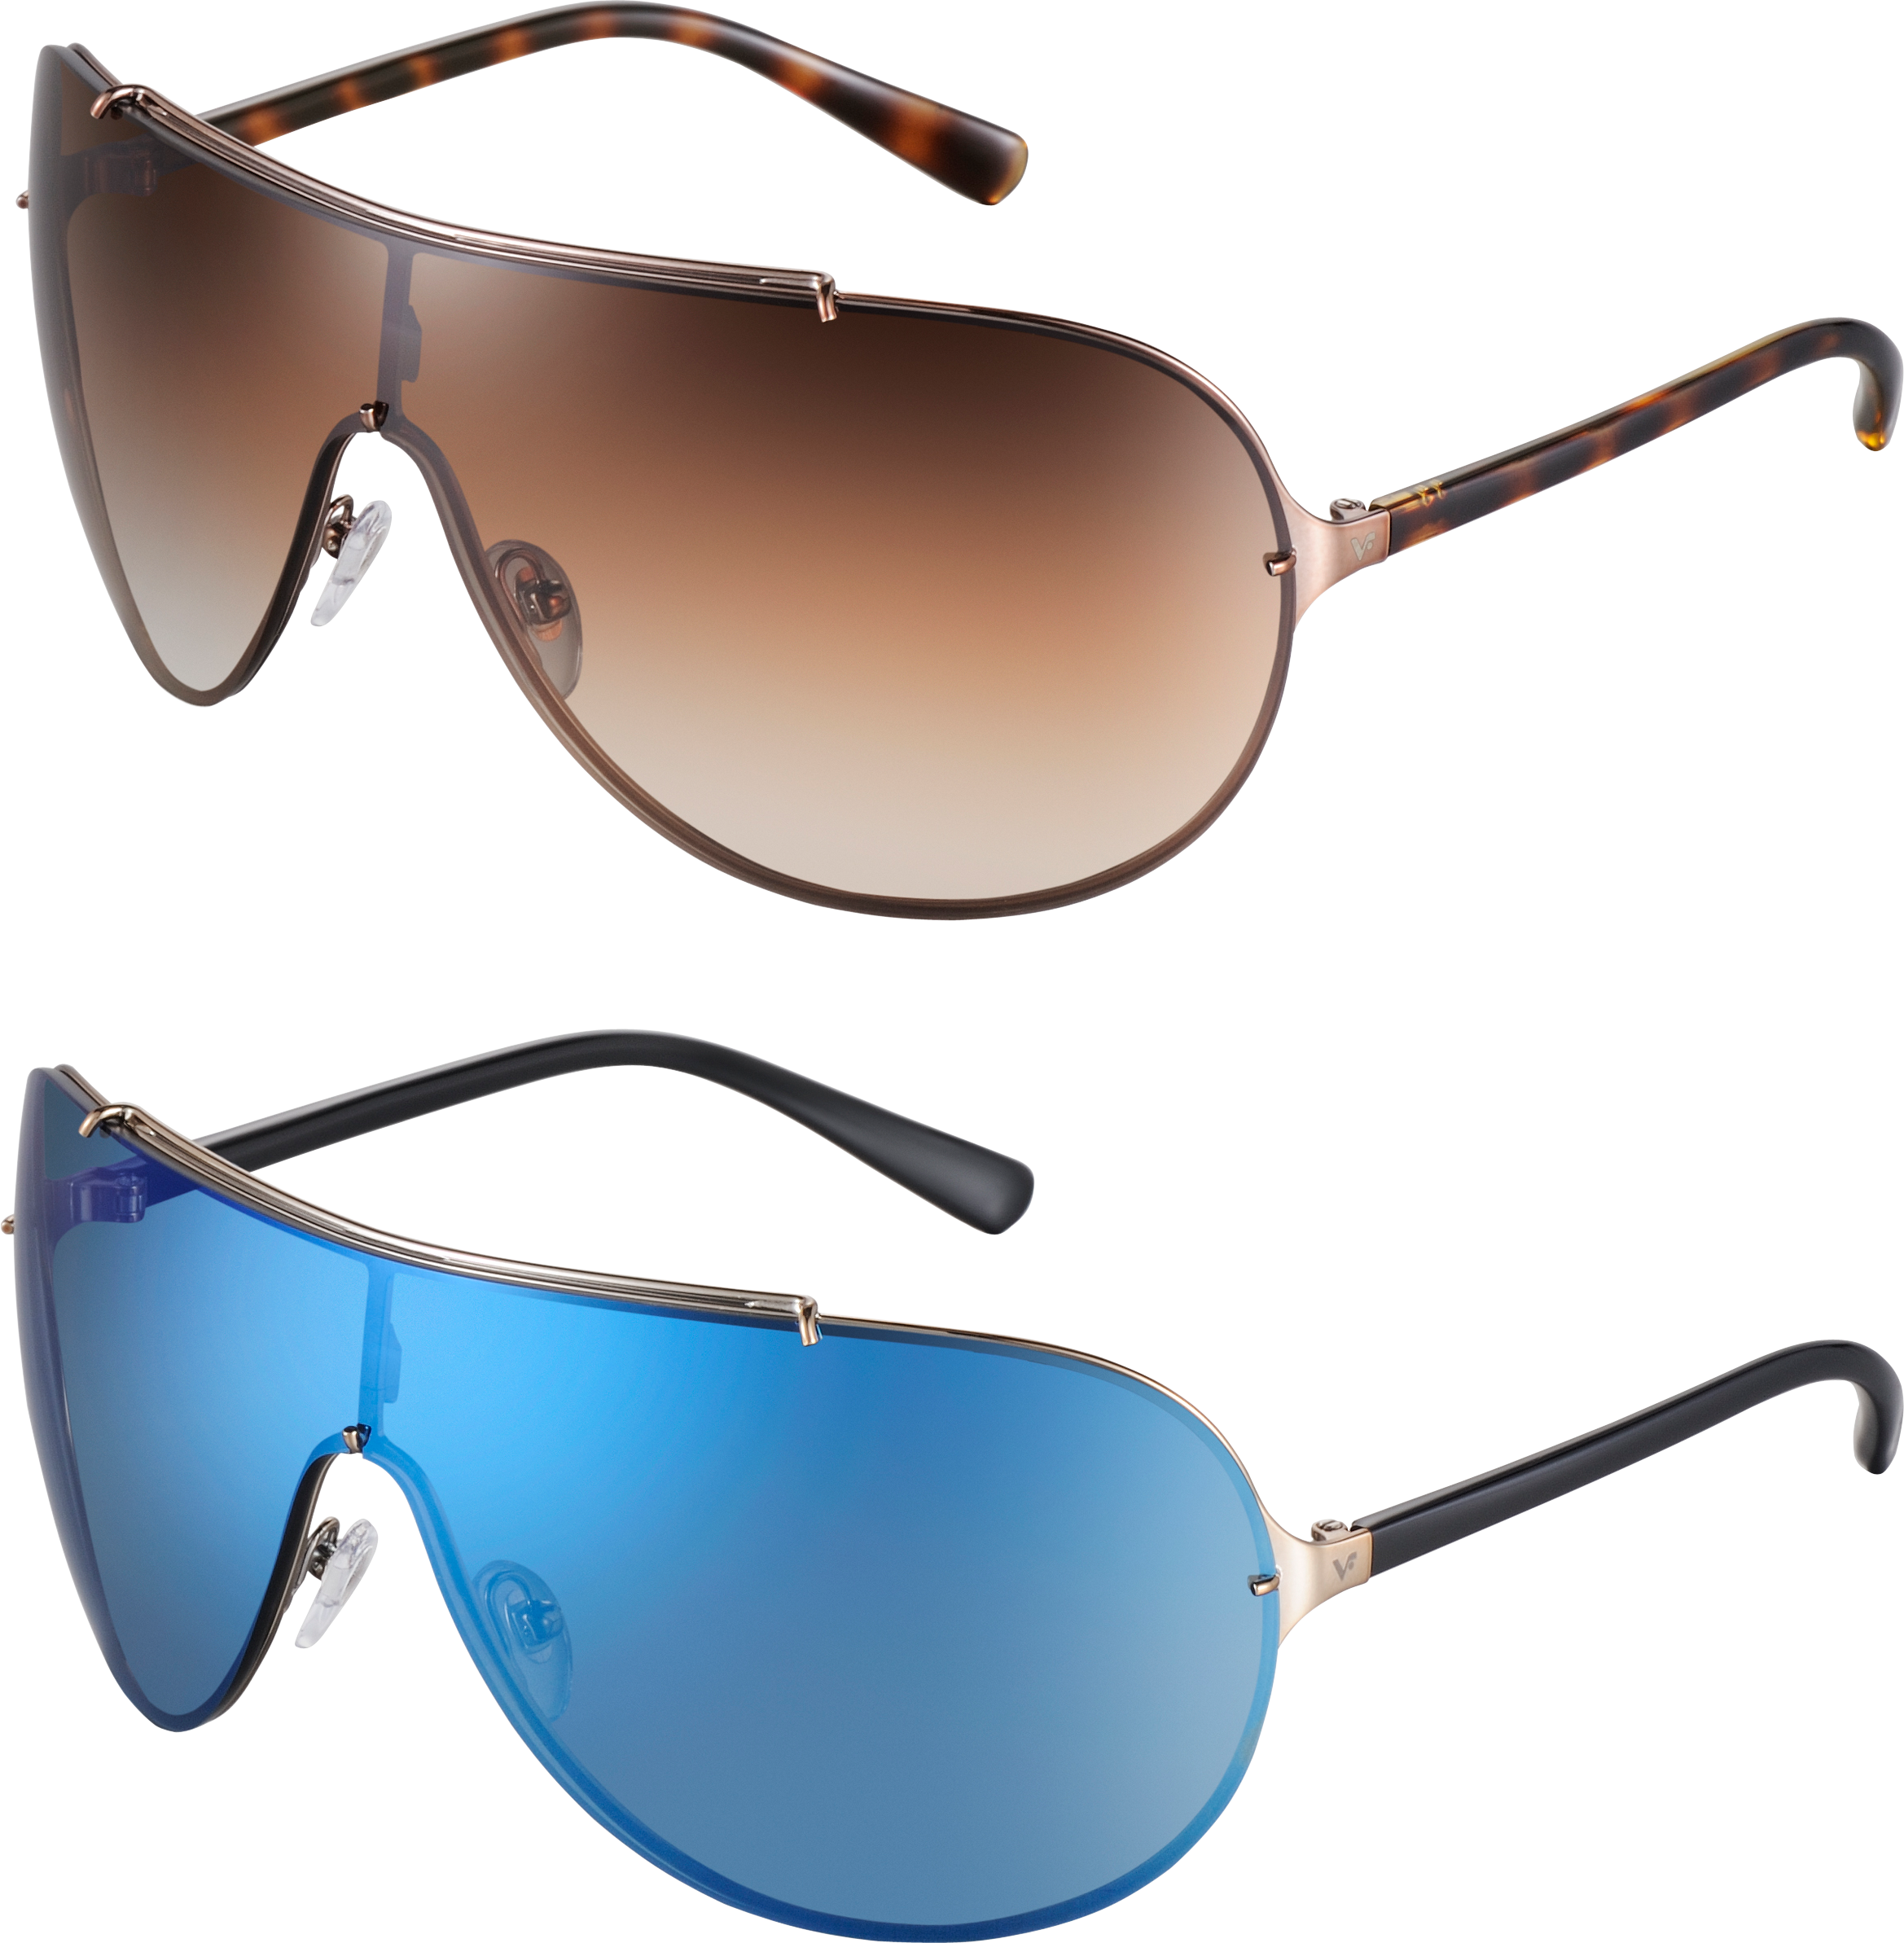 sunglasses PNG image - Sunglasses PNG